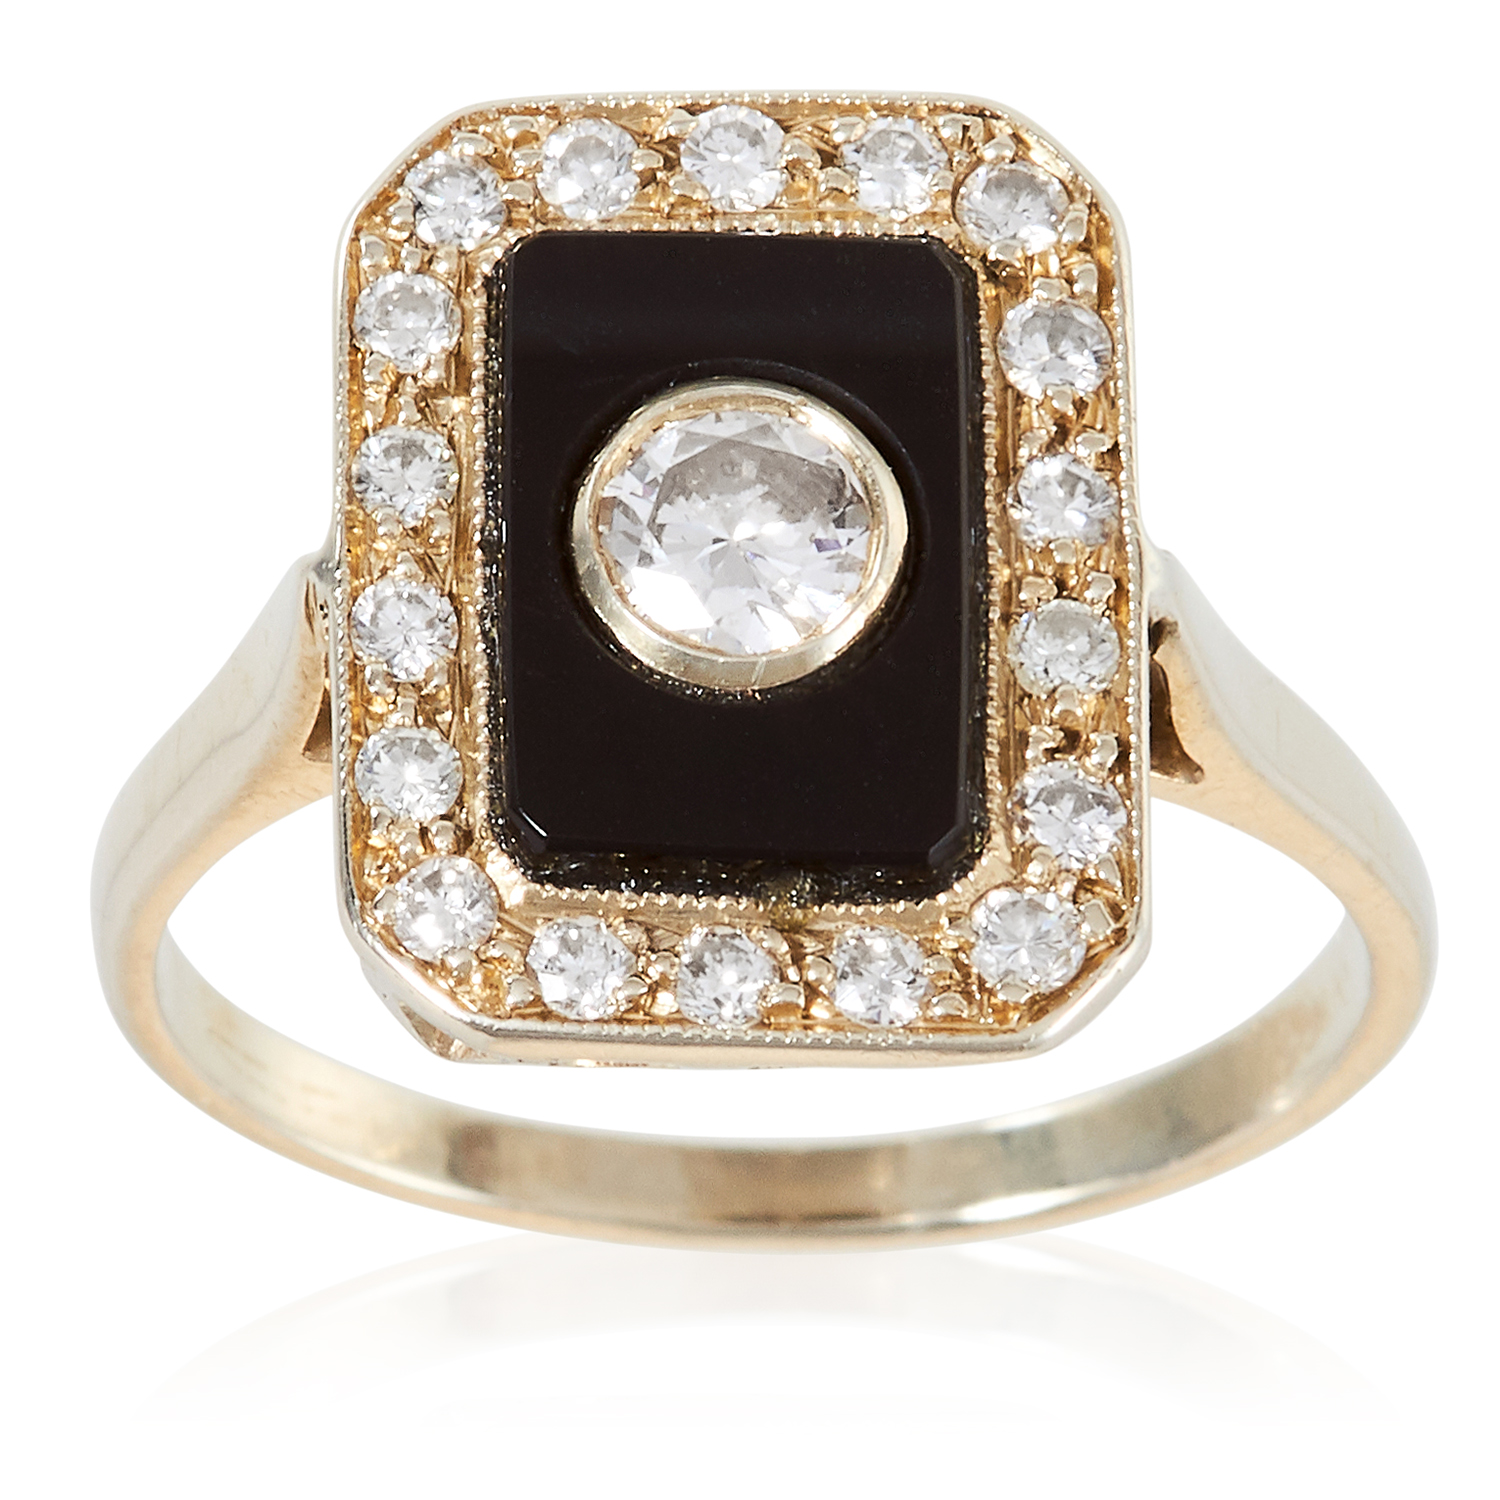 Los 10 - AN ART DECO DIAMOND AND ONYX RING in 18ct gold, the central 0.23 carat round cut diamond set against